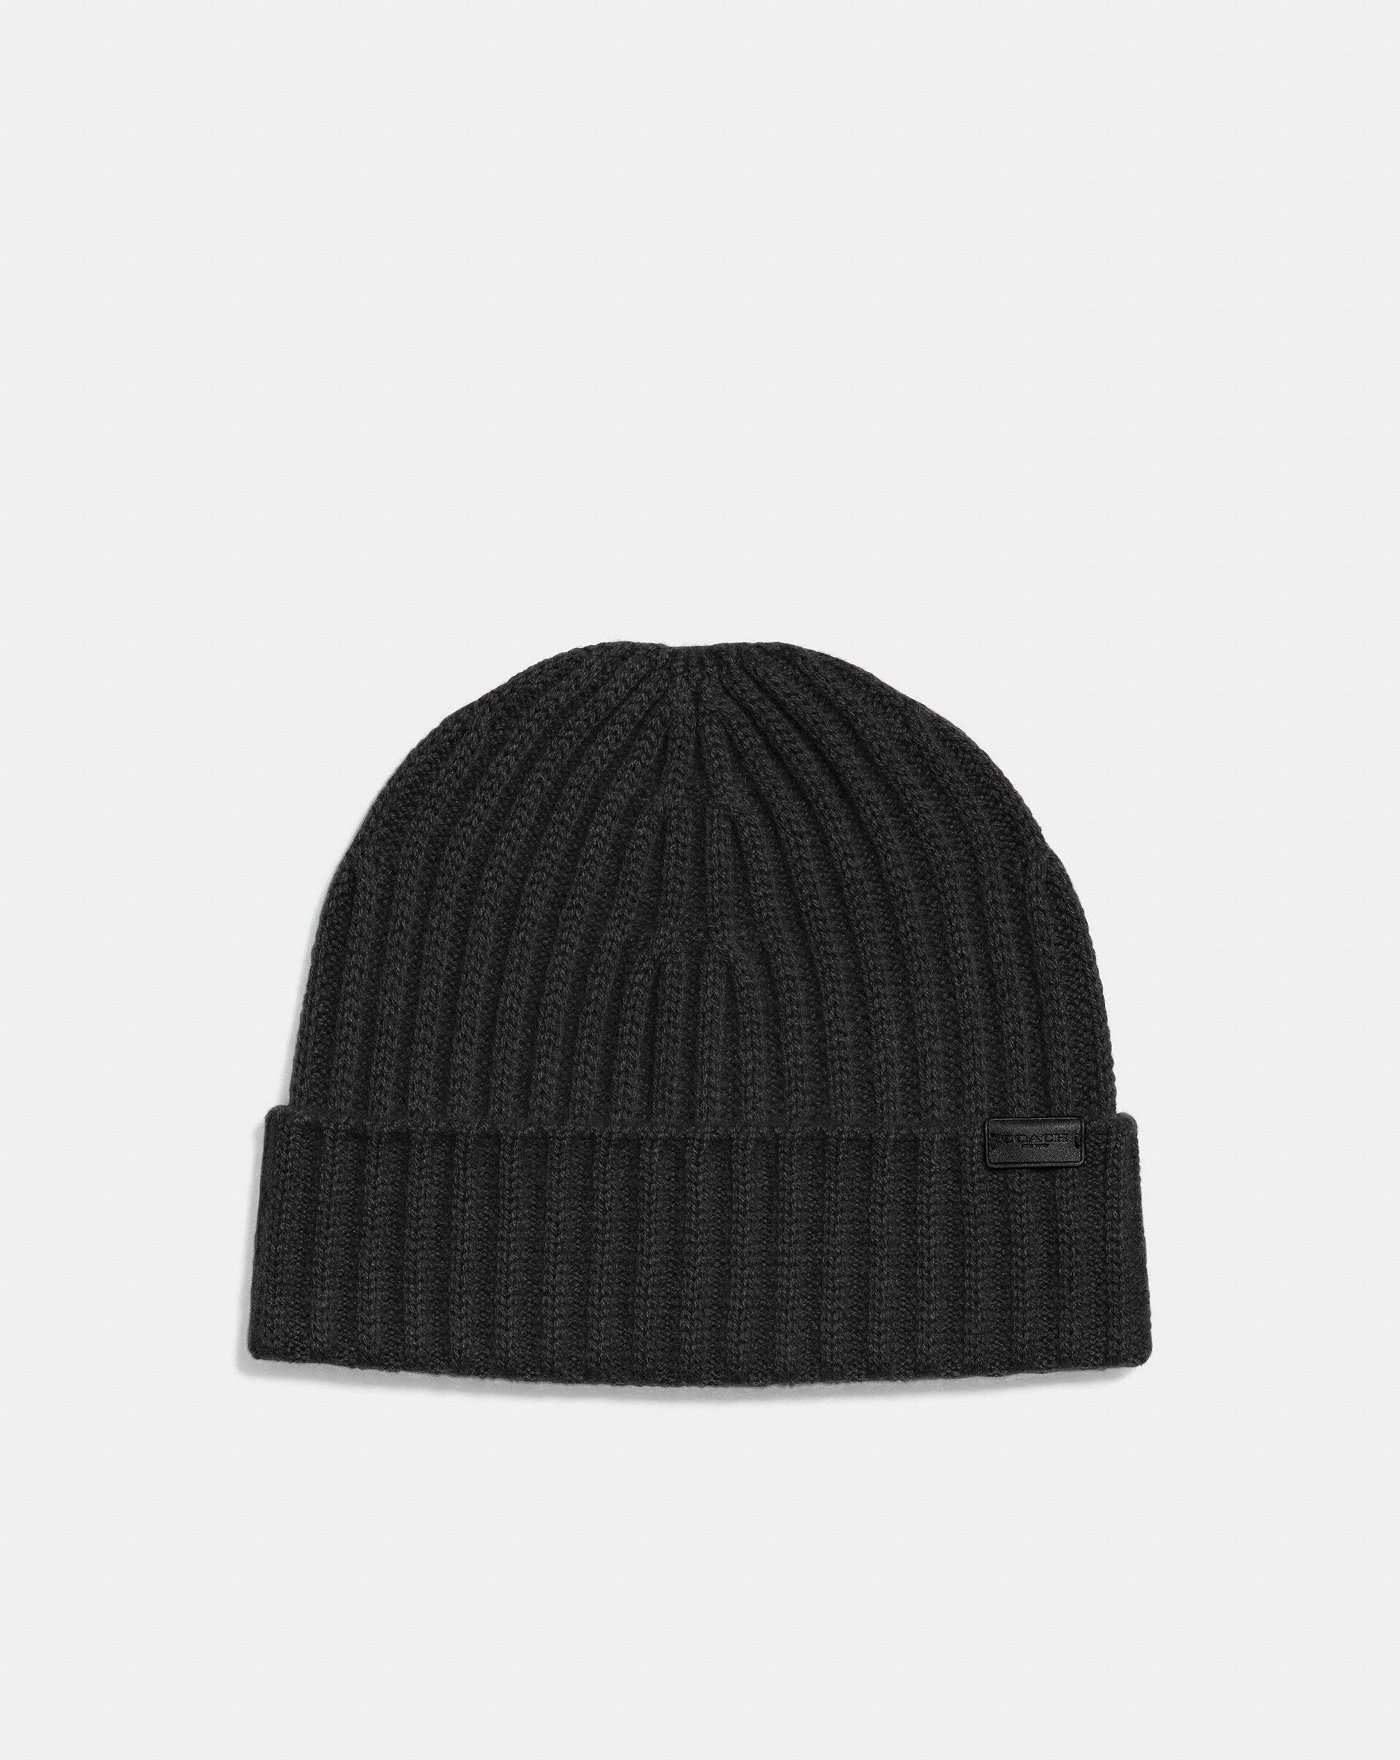 Coach Beanie for Men. Ooh! | Coolest Men's Gifts | 2017 Holiday Gift Guide